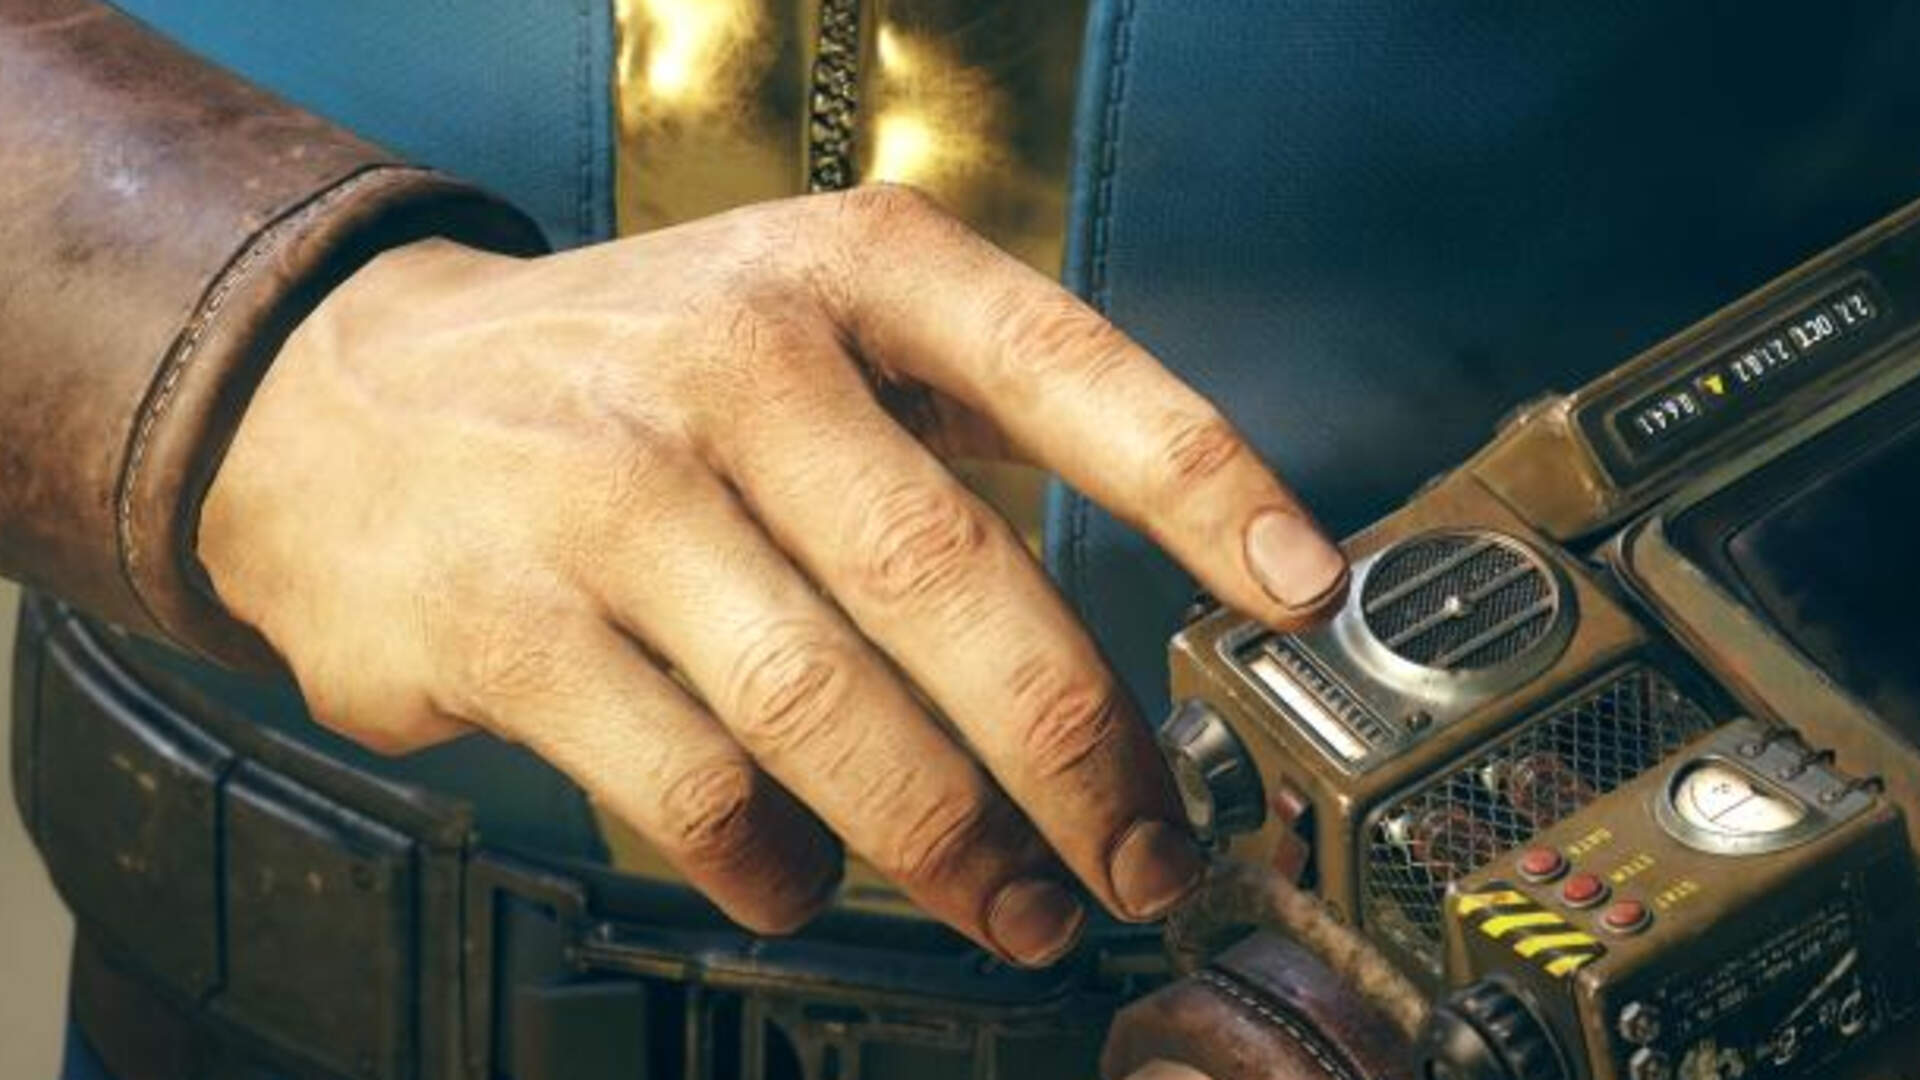 Fallout 76's 54 GB Day One Patch is Bigger Than the Actual Game